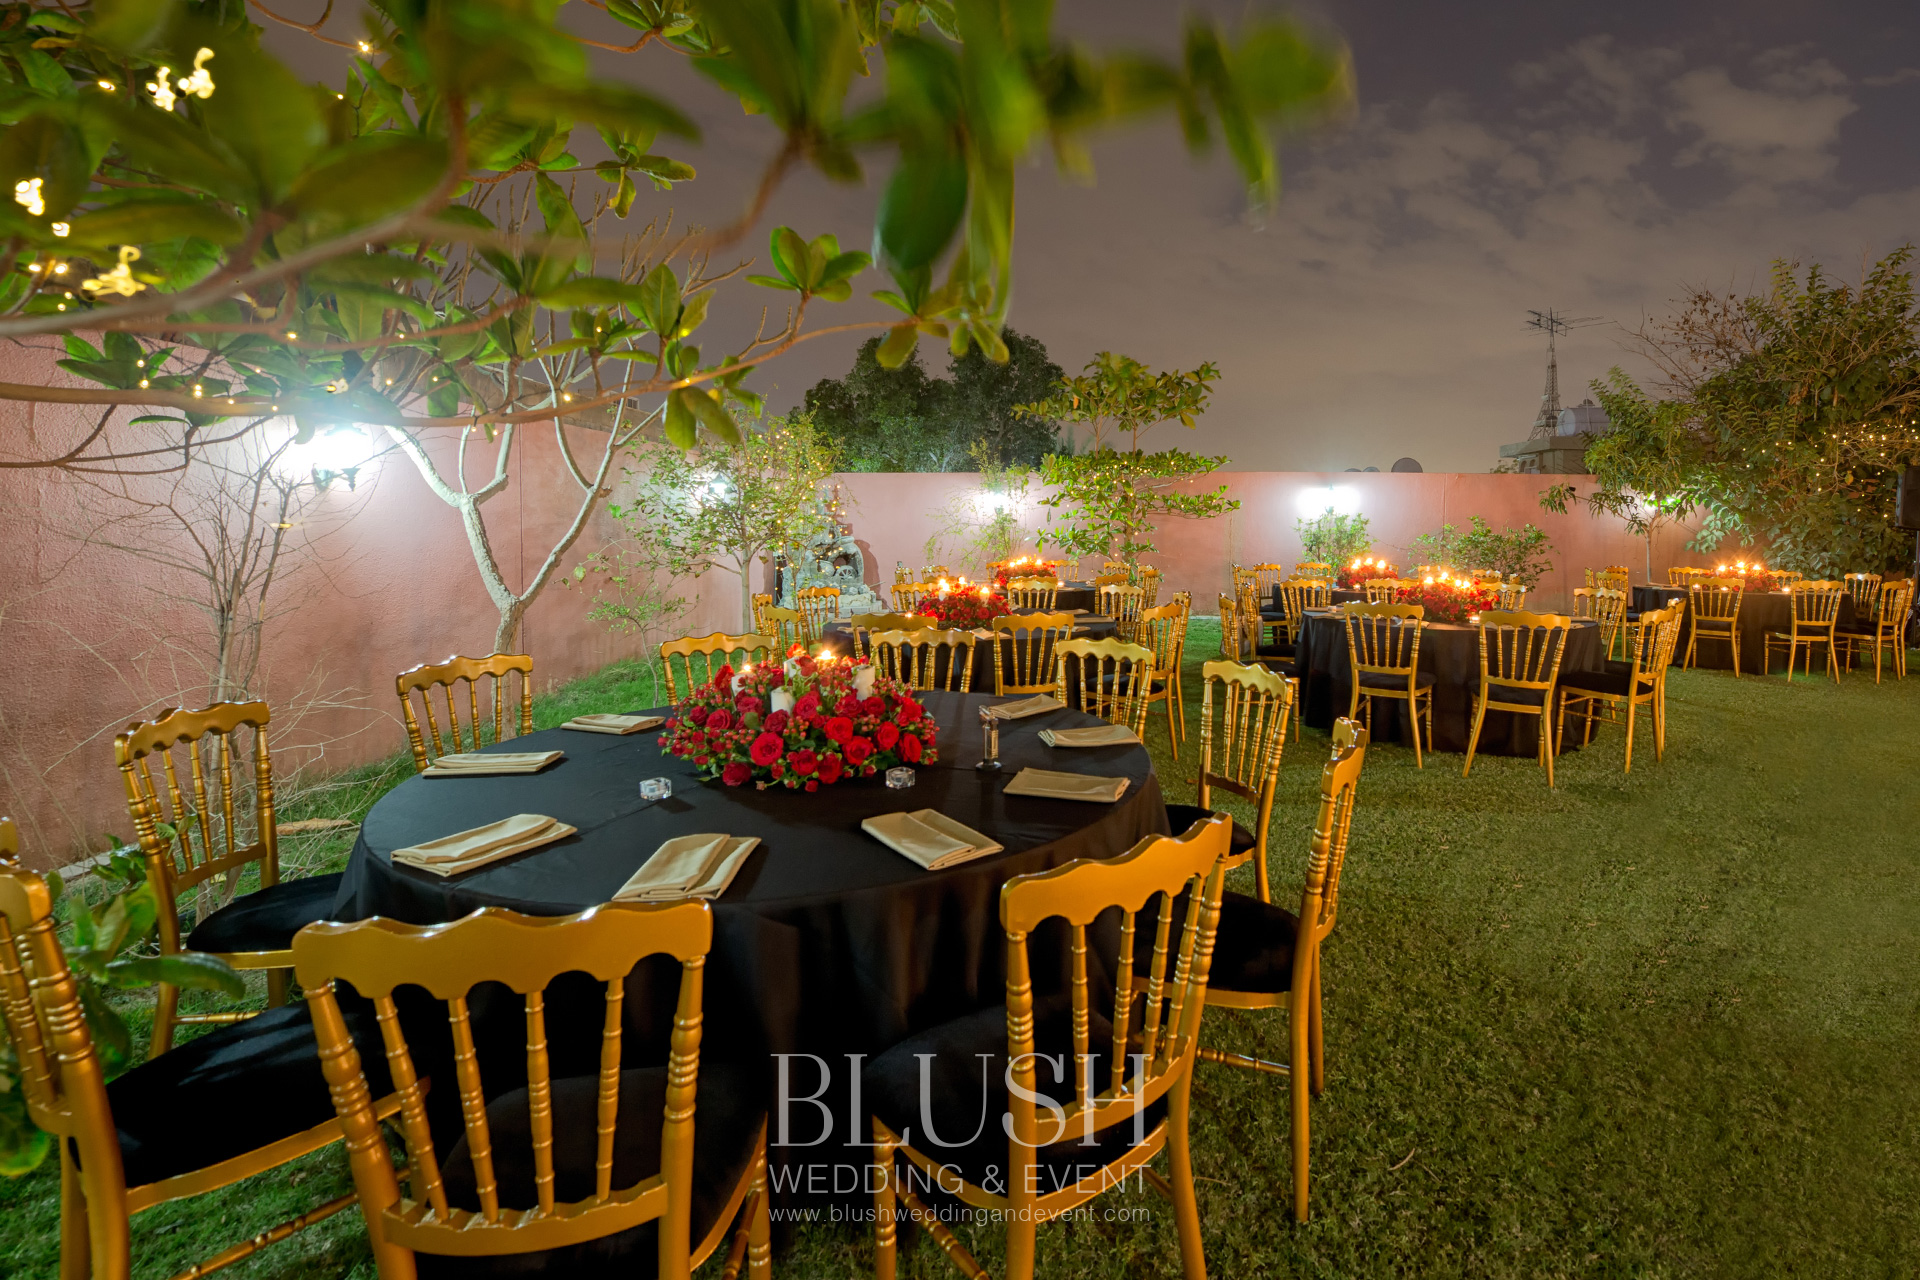 Engagement Dinner Setup in Dubai by Blush Wedding and Event Planner